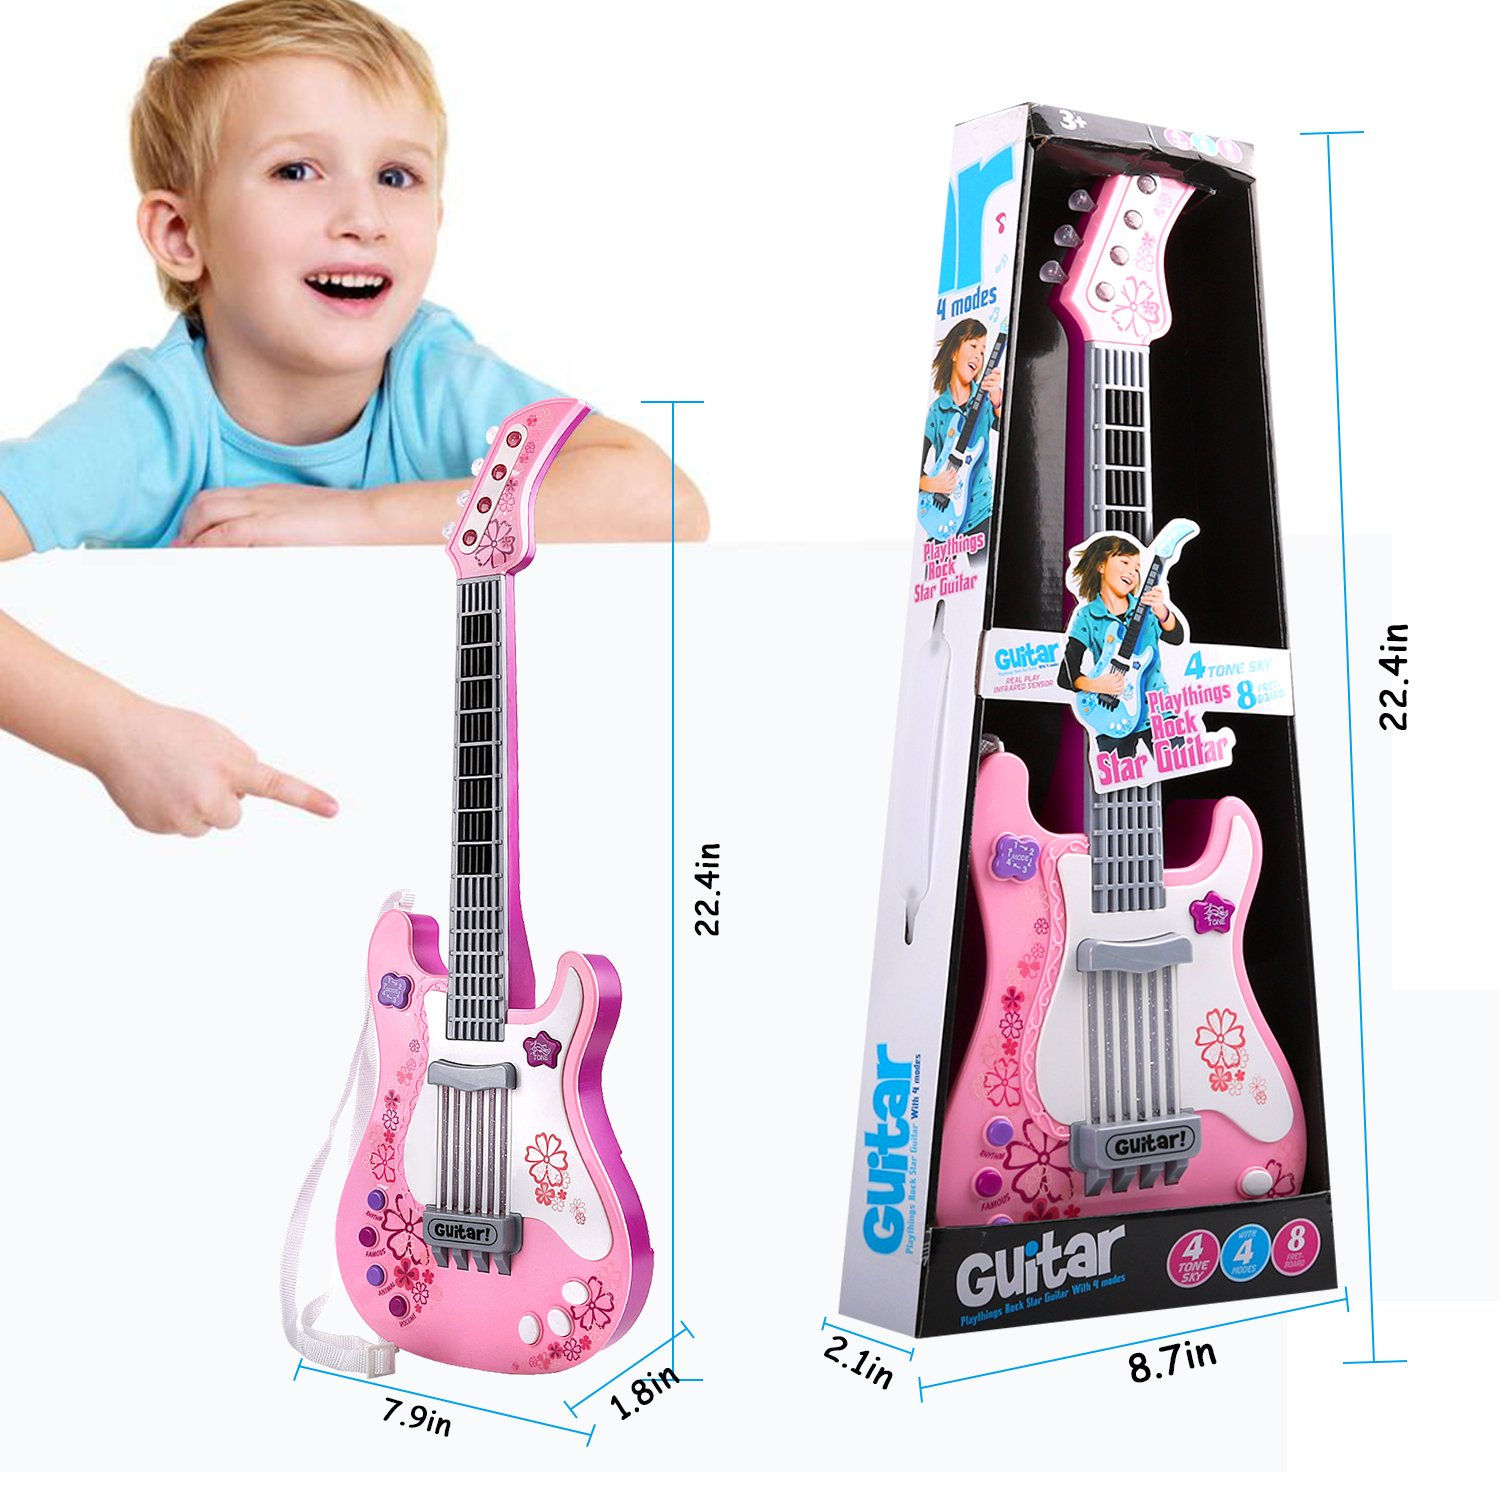 M SANMERSEN Guitar Toys for Kids with Vibrant Sounds No String-RO Pink